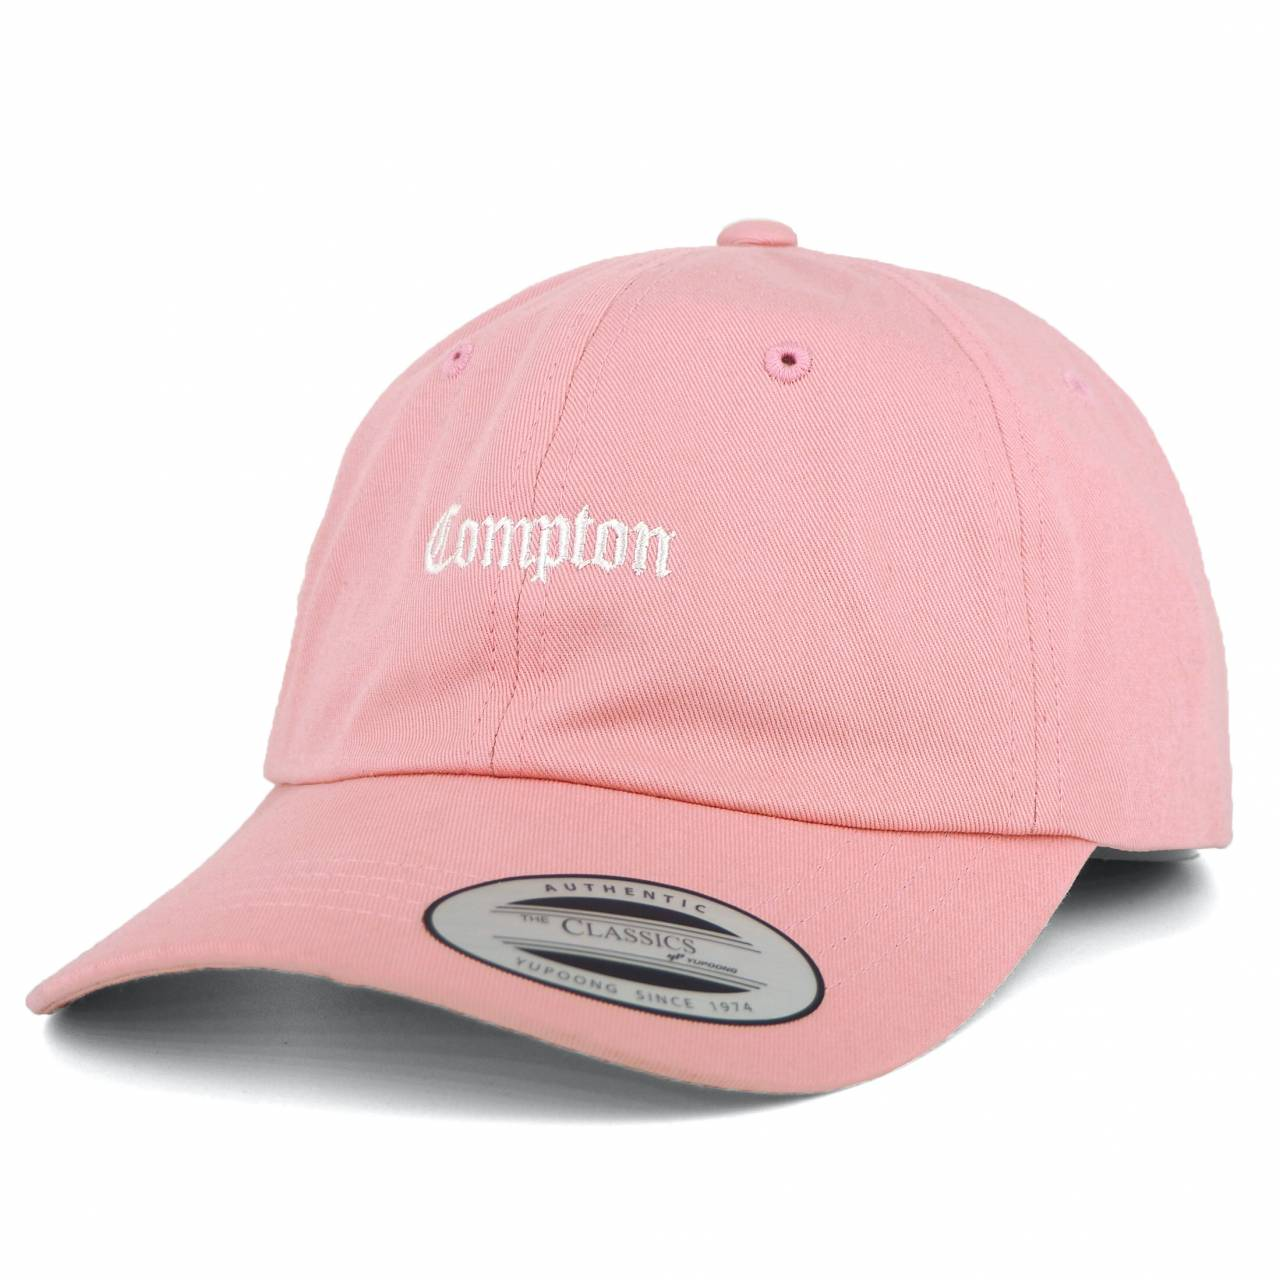 MT536-00185-00 50 COMPTON DAD'S CAP PINK SOFT CROWN